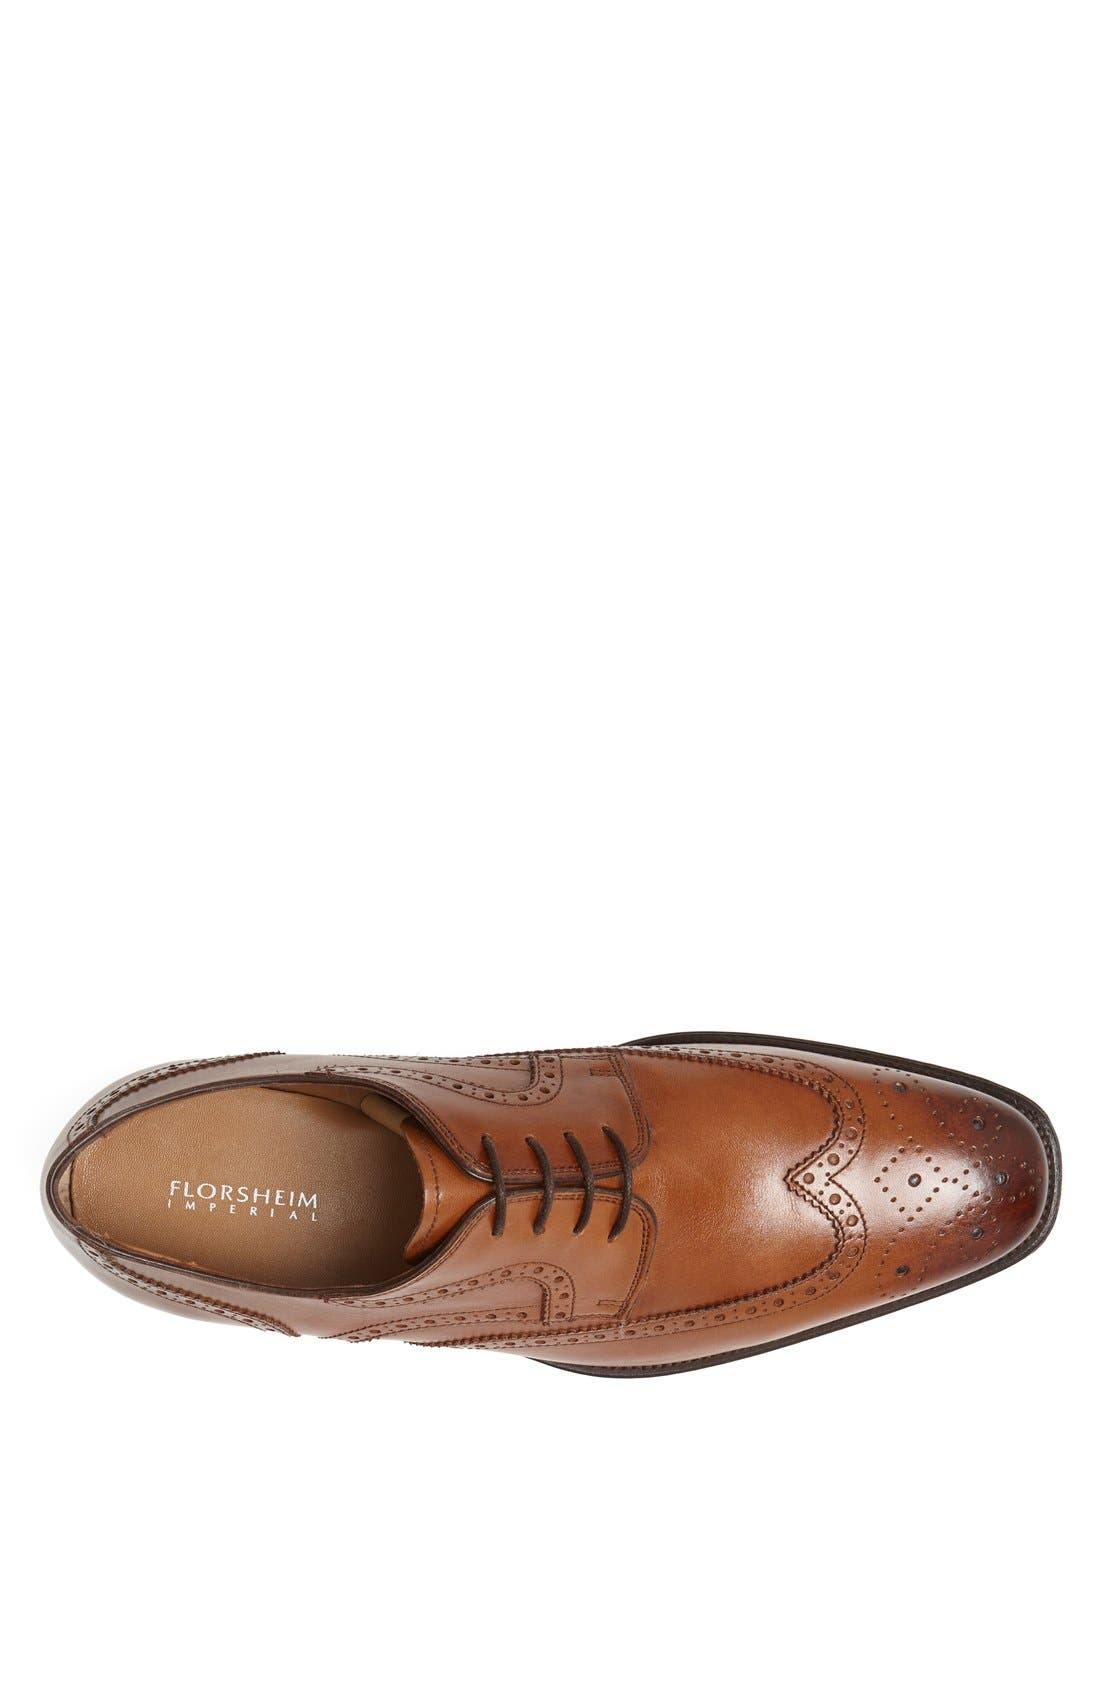 'Classico' Wingtip,                             Alternate thumbnail 3, color,                             COGNAC